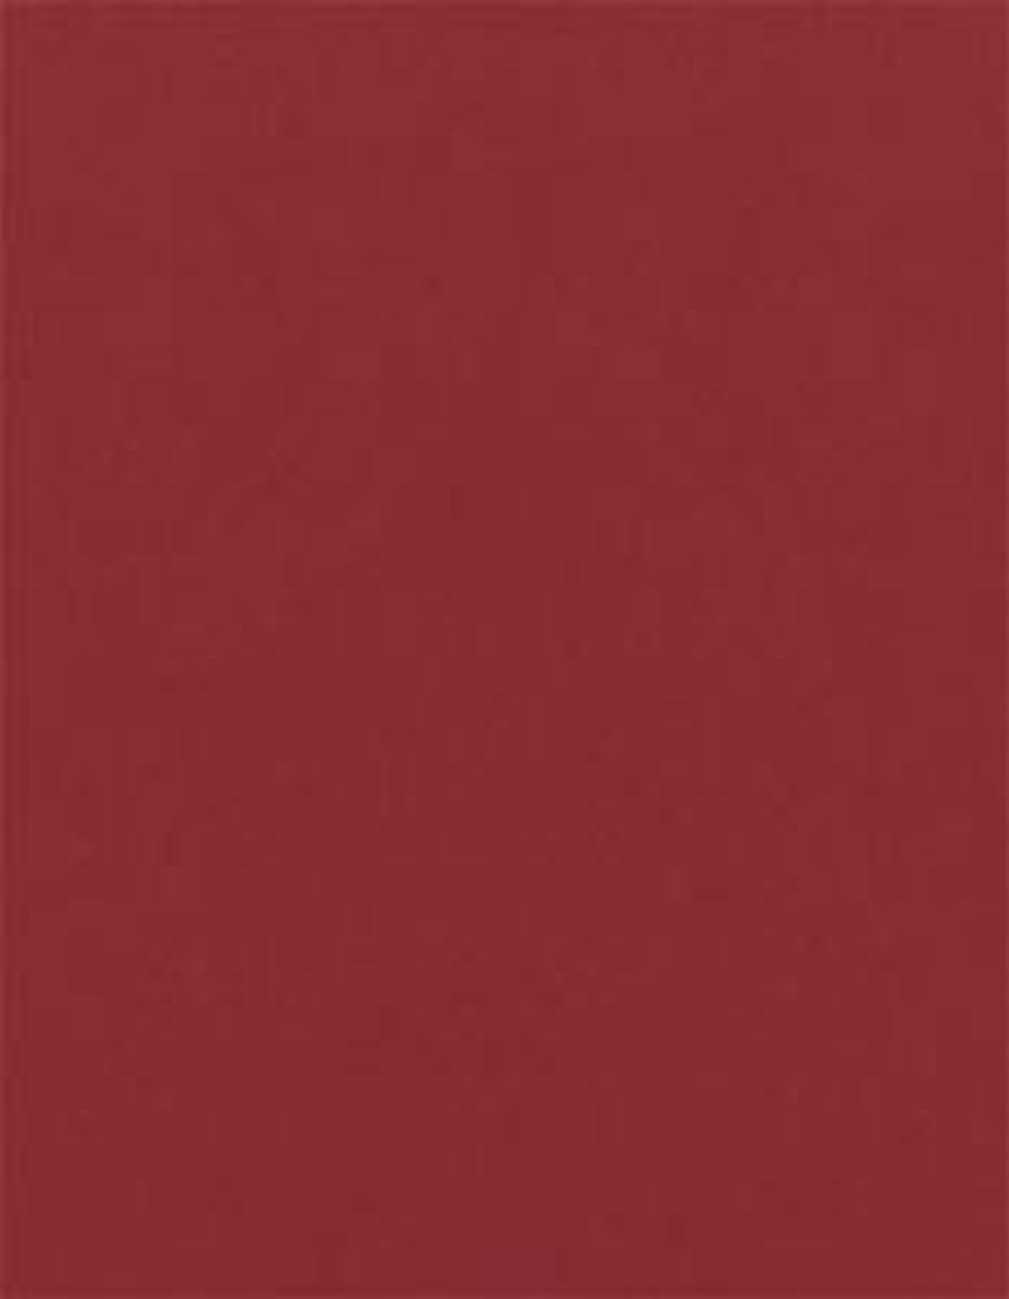 Firecracker Red 80 lb. Cardstock Paper - 8.5 x 11 inch Cover - 25 Sheets